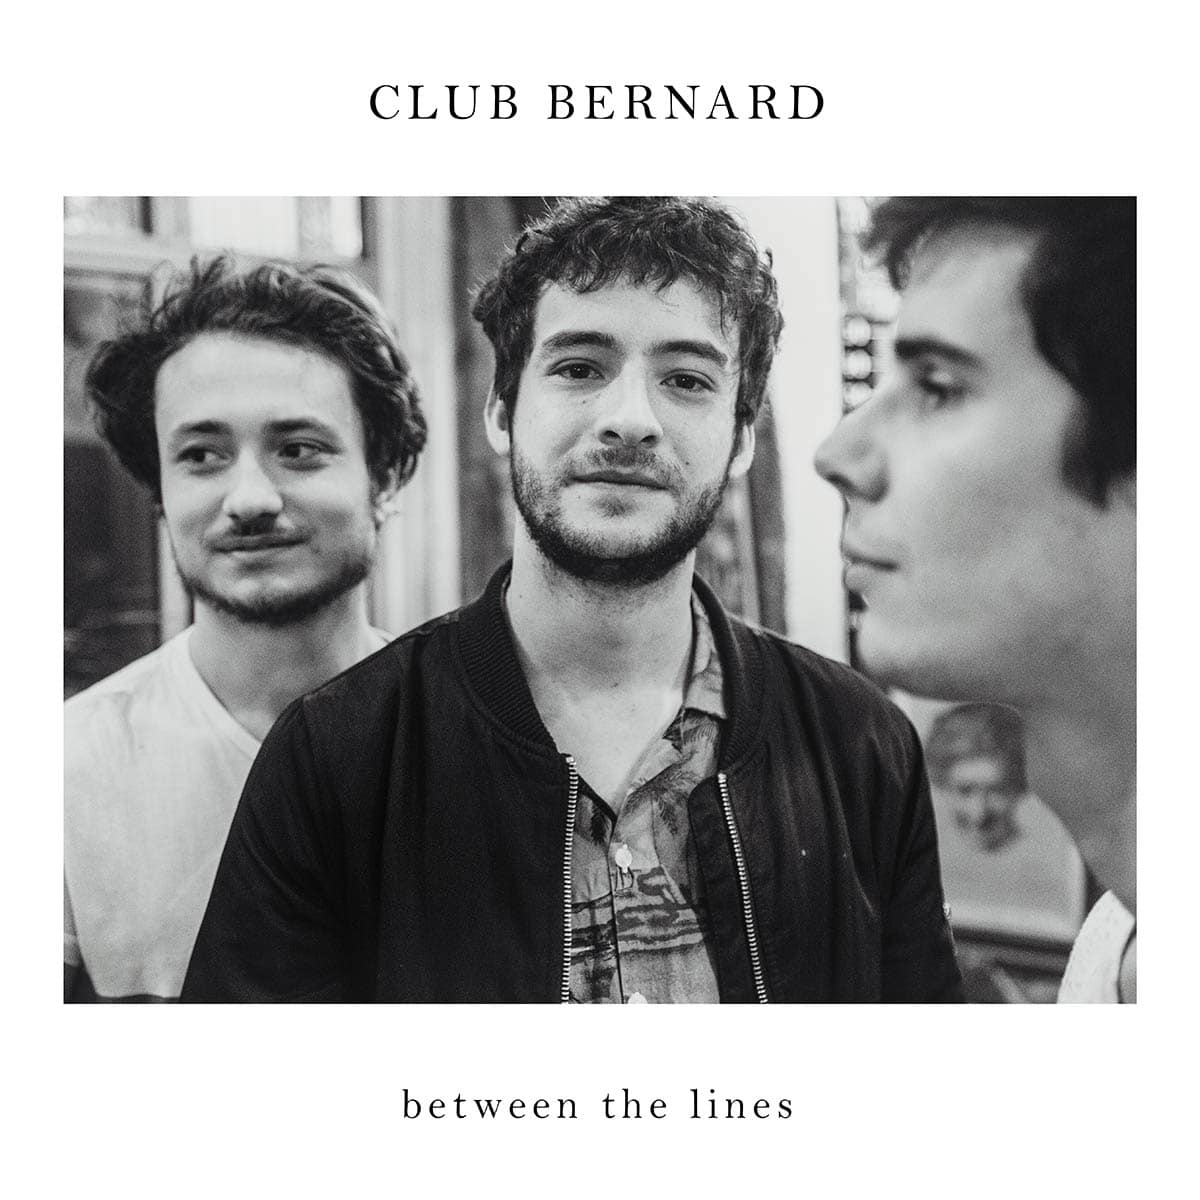 Cover album pochette club bernard between the lines